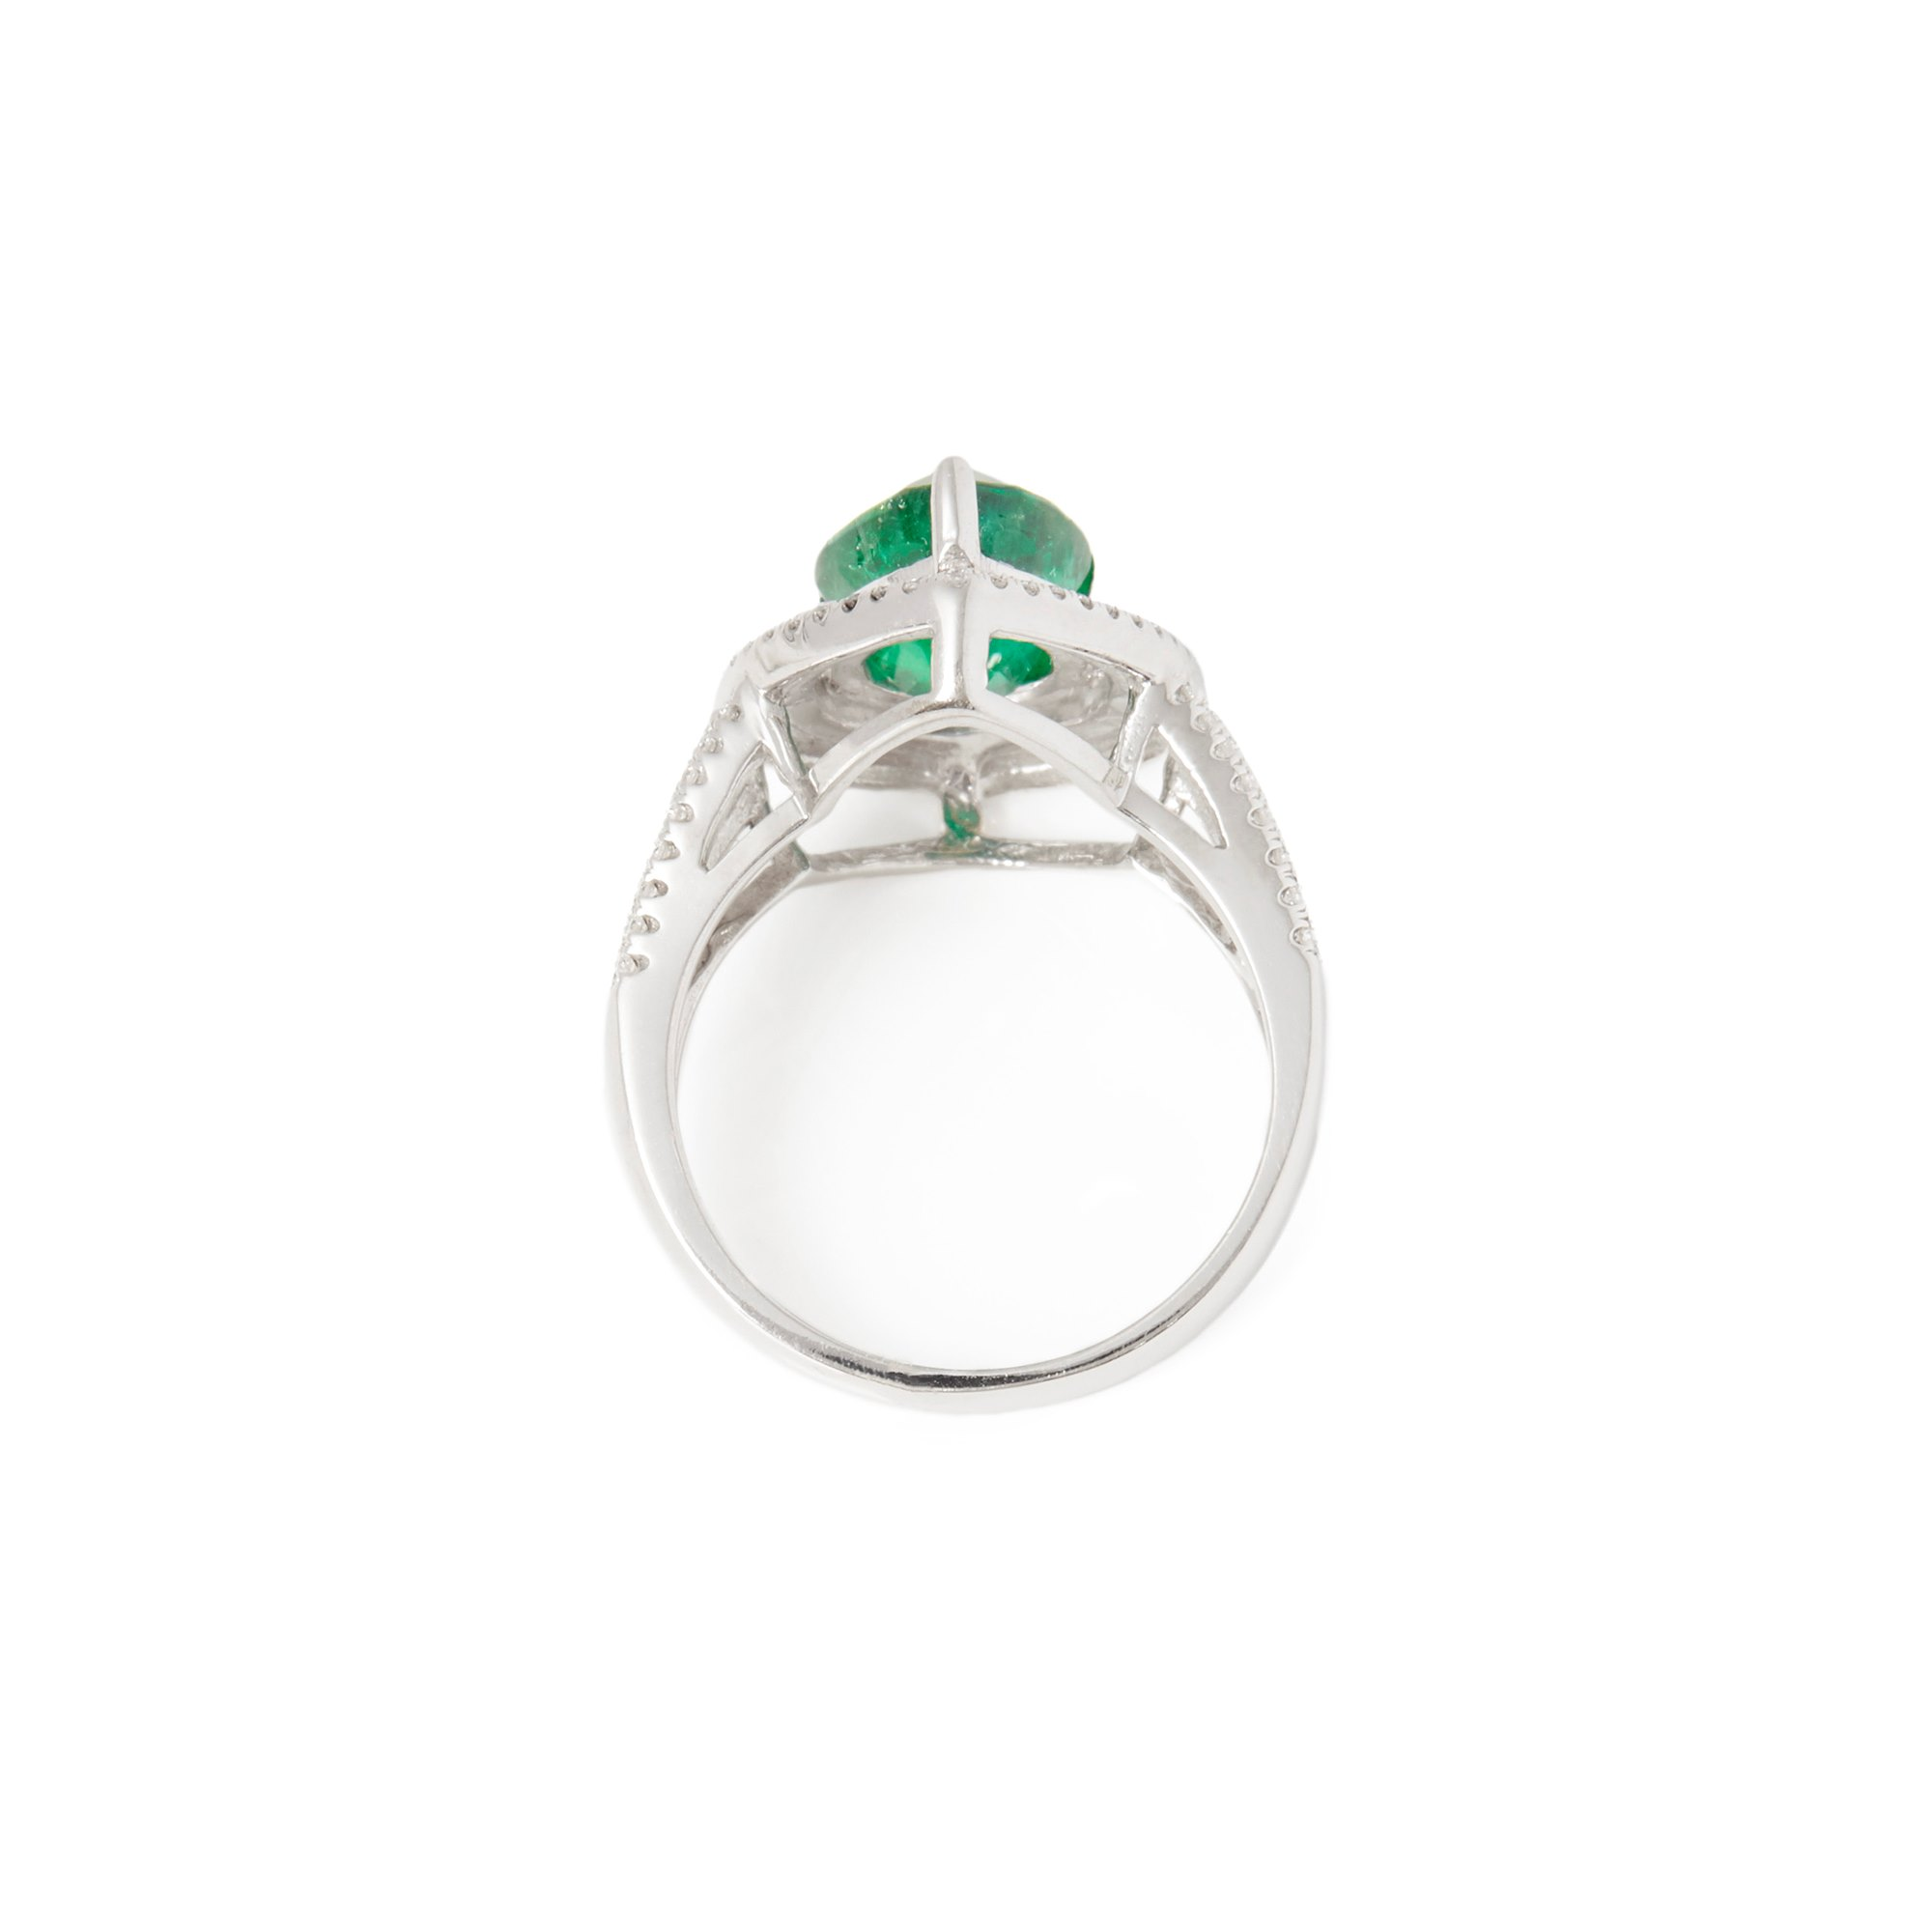 David Jerome 18ct White Gold Emerald and Diamond Ring